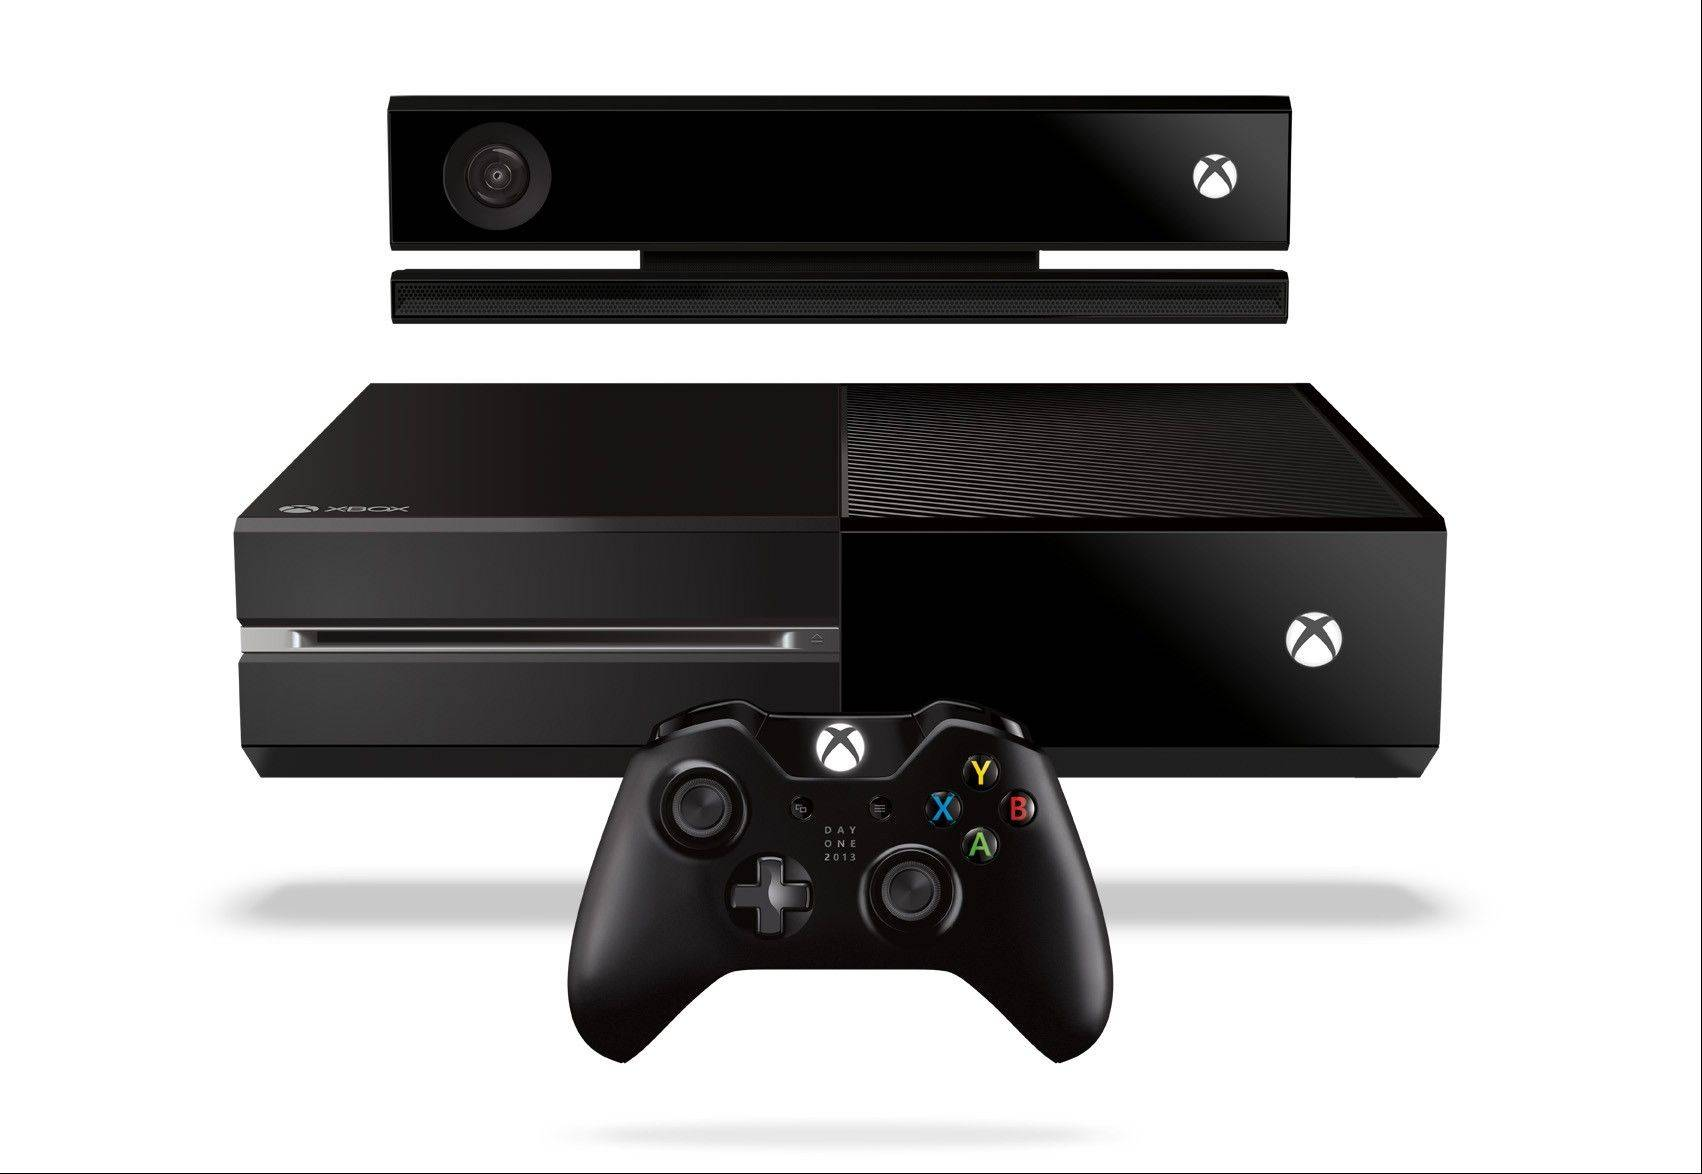 The Xbox One will be in stores Friday, Nov. 22.